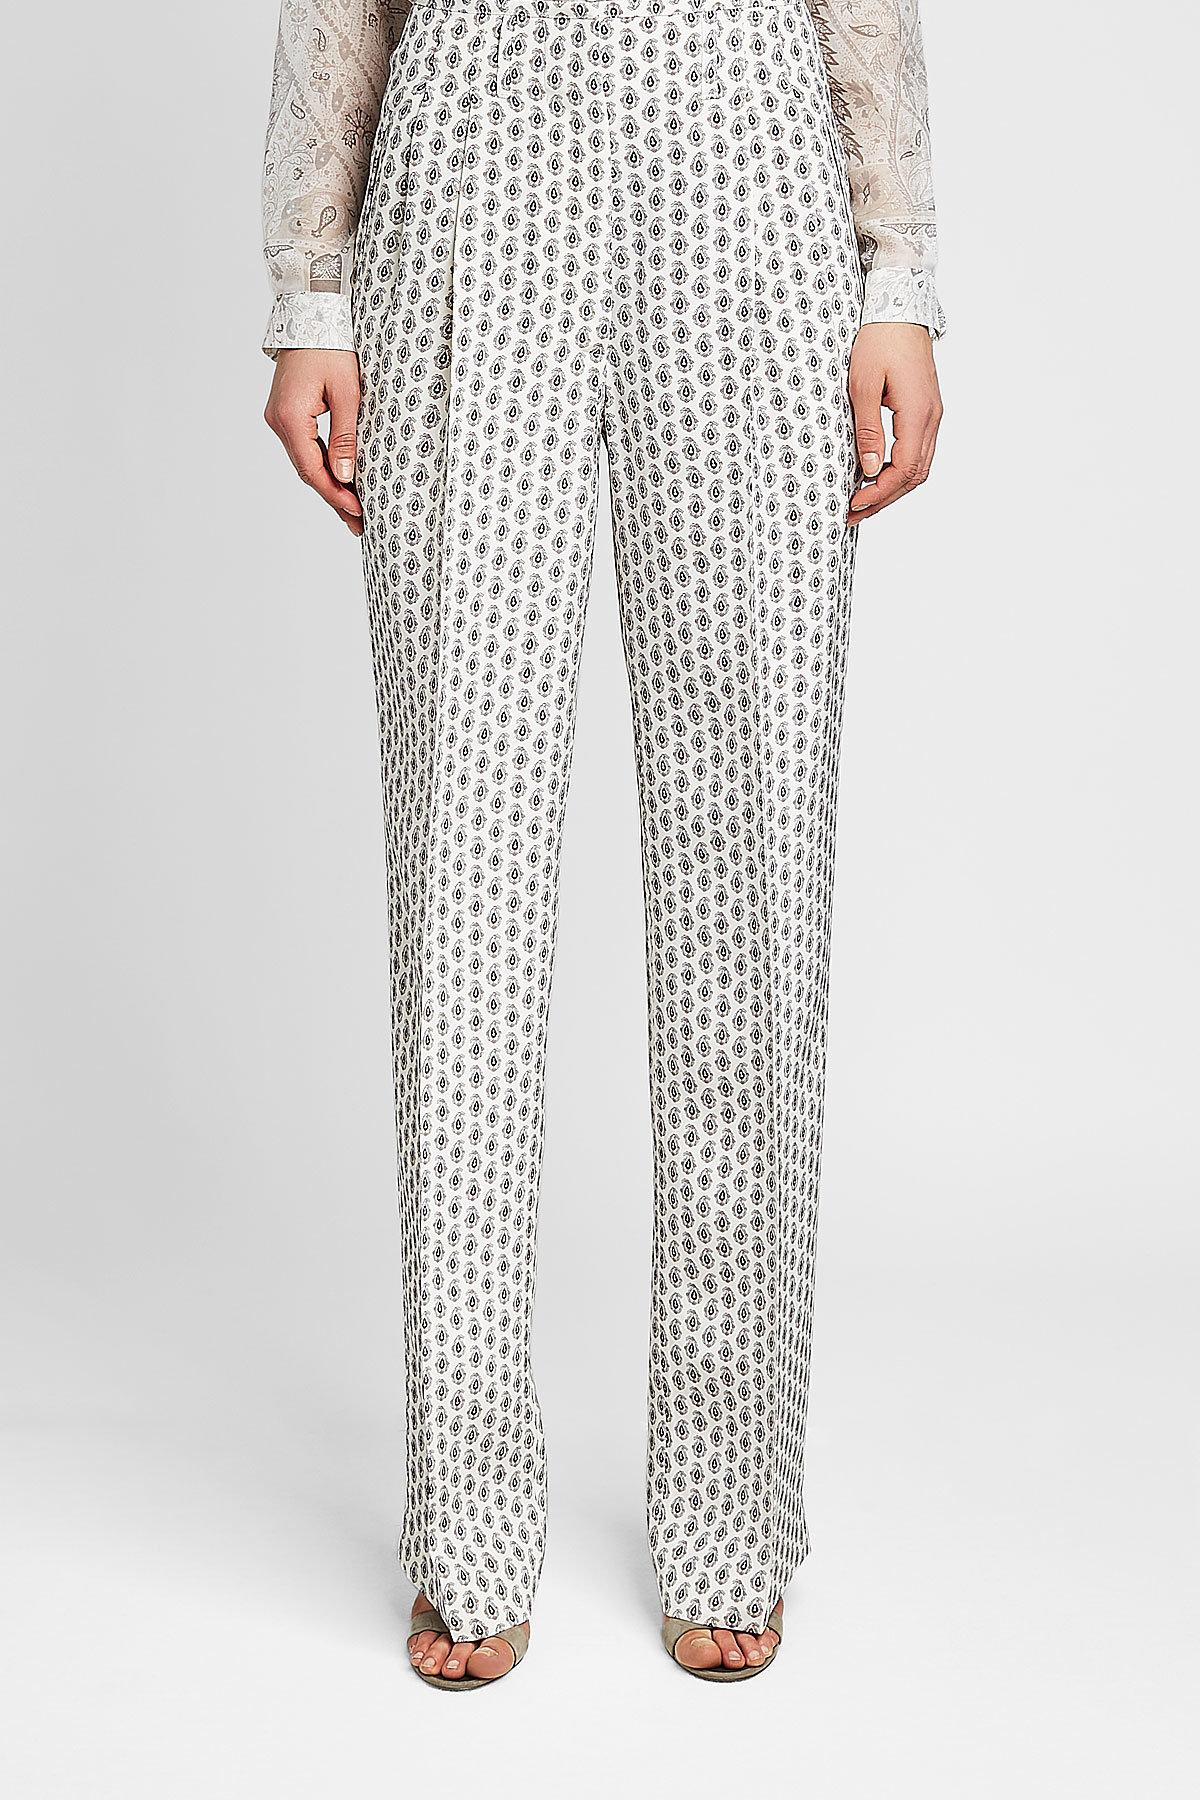 f6b7c41d467ef Etro - Multicolor Printed Silk Trousers - Lyst. View fullscreen